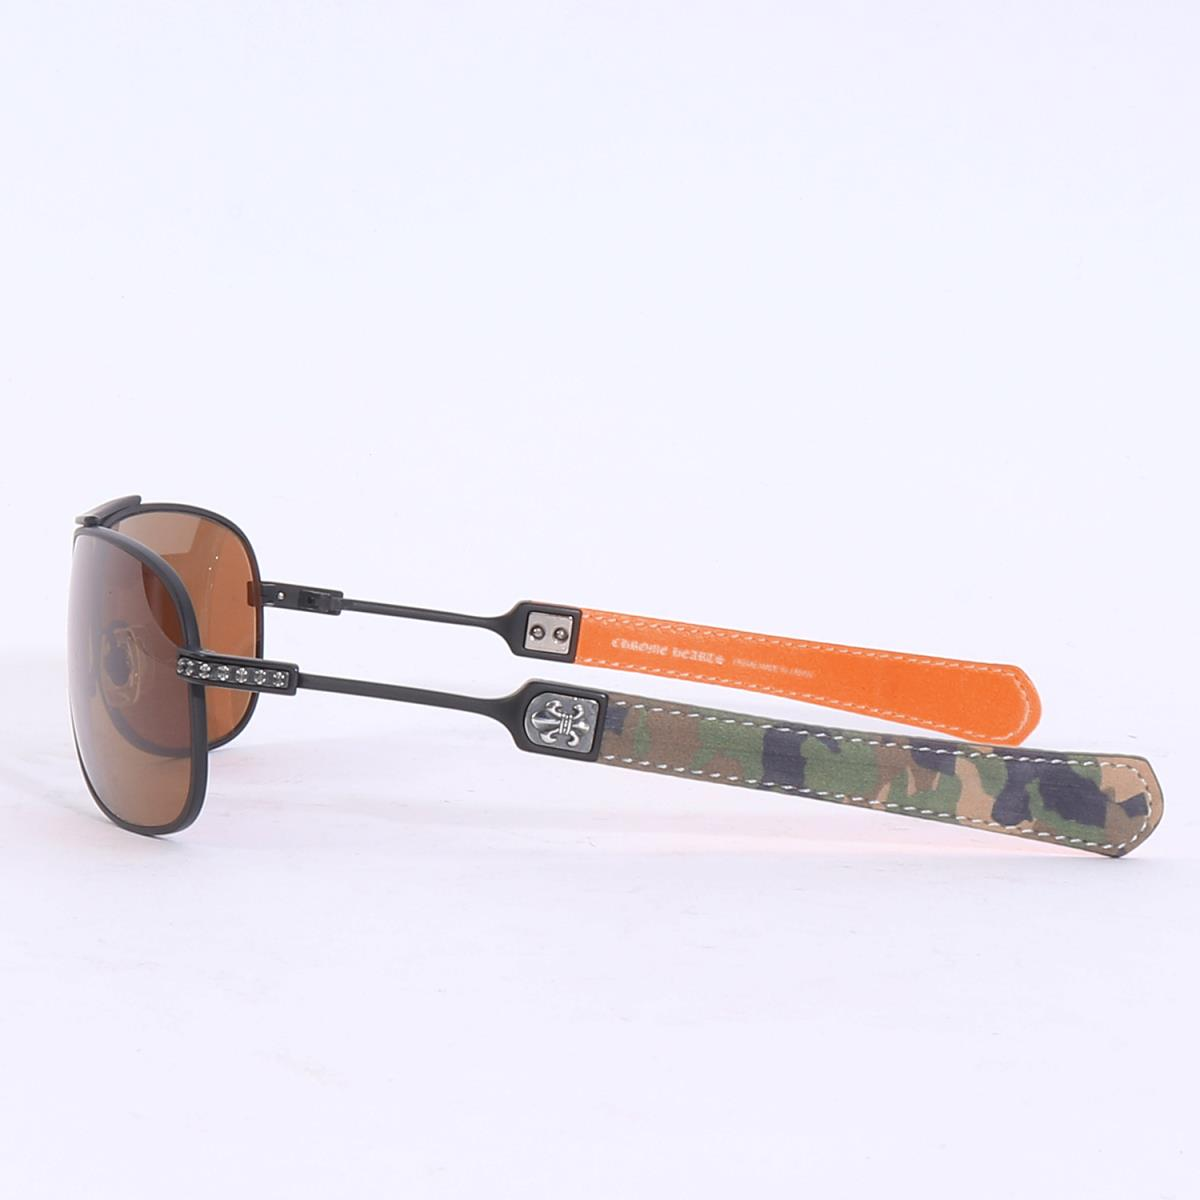 2bb4df9fab0 Teardrop sunglasses (CLASSIC ELITE) black   camouflage frame X brown lens  with CHROME HEARTS (chromic Hertz) BS flare parts